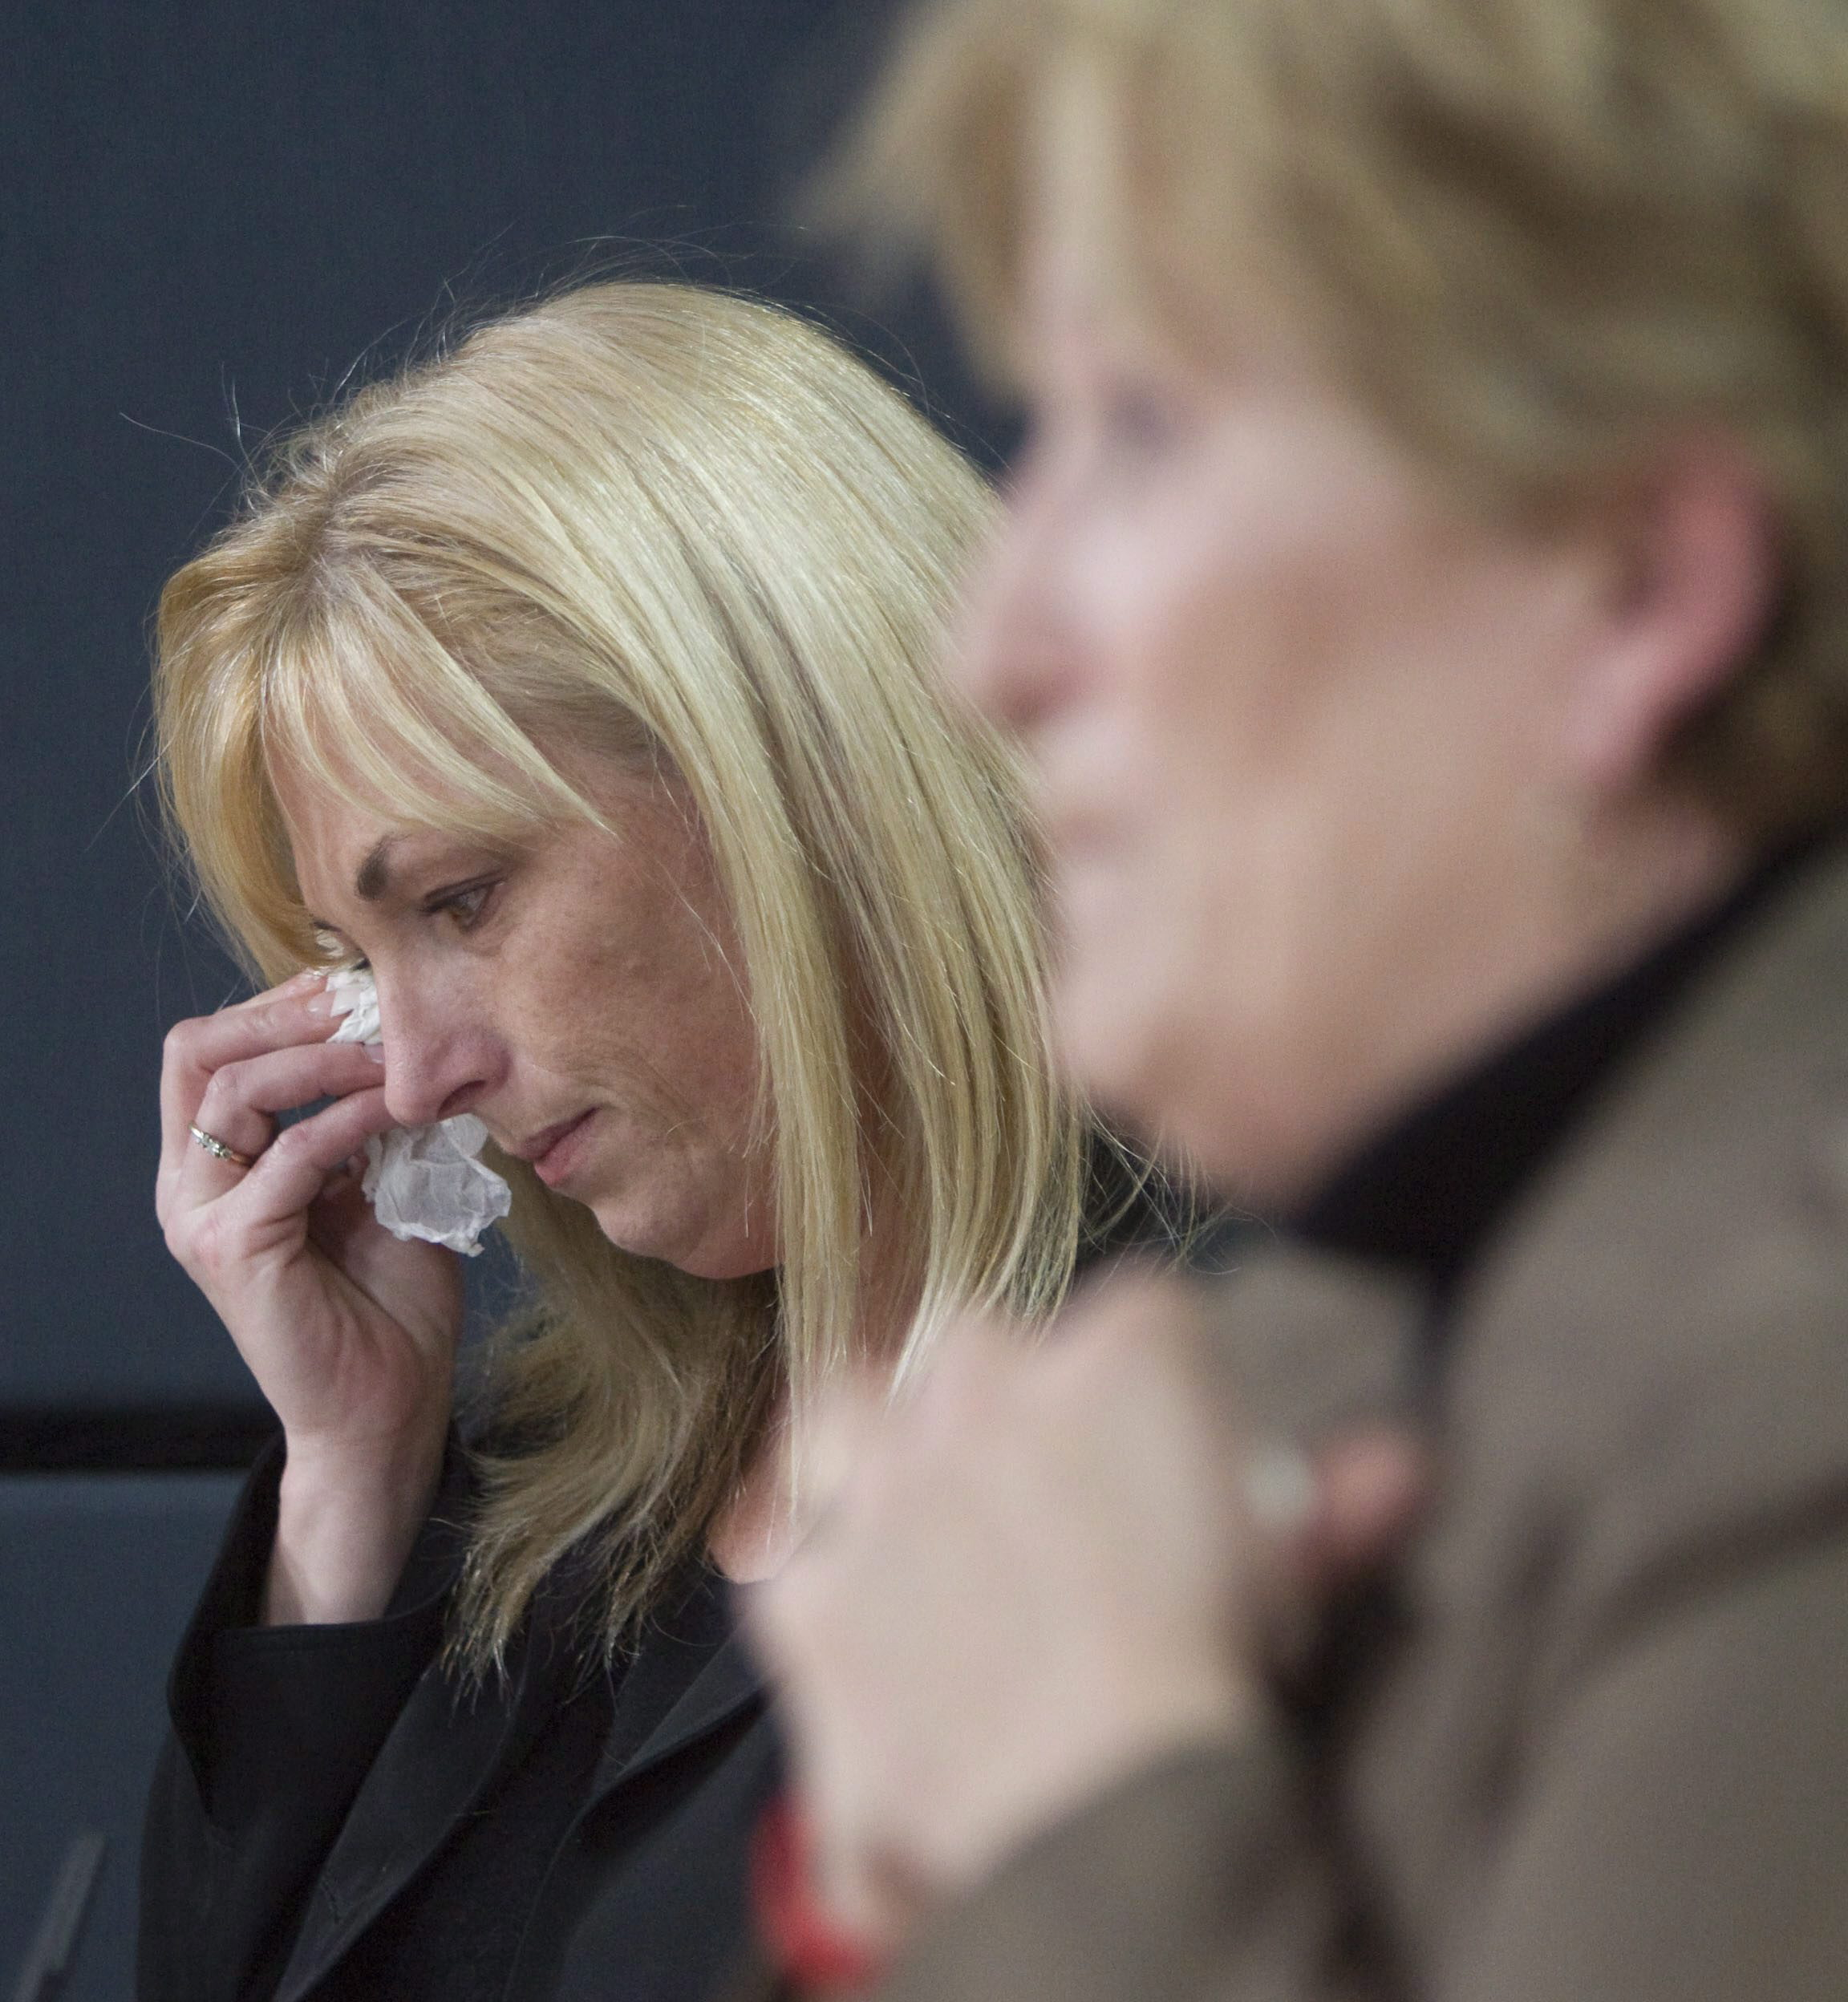 Ashley Smith's sister cries as she and her mother speak with reporters.